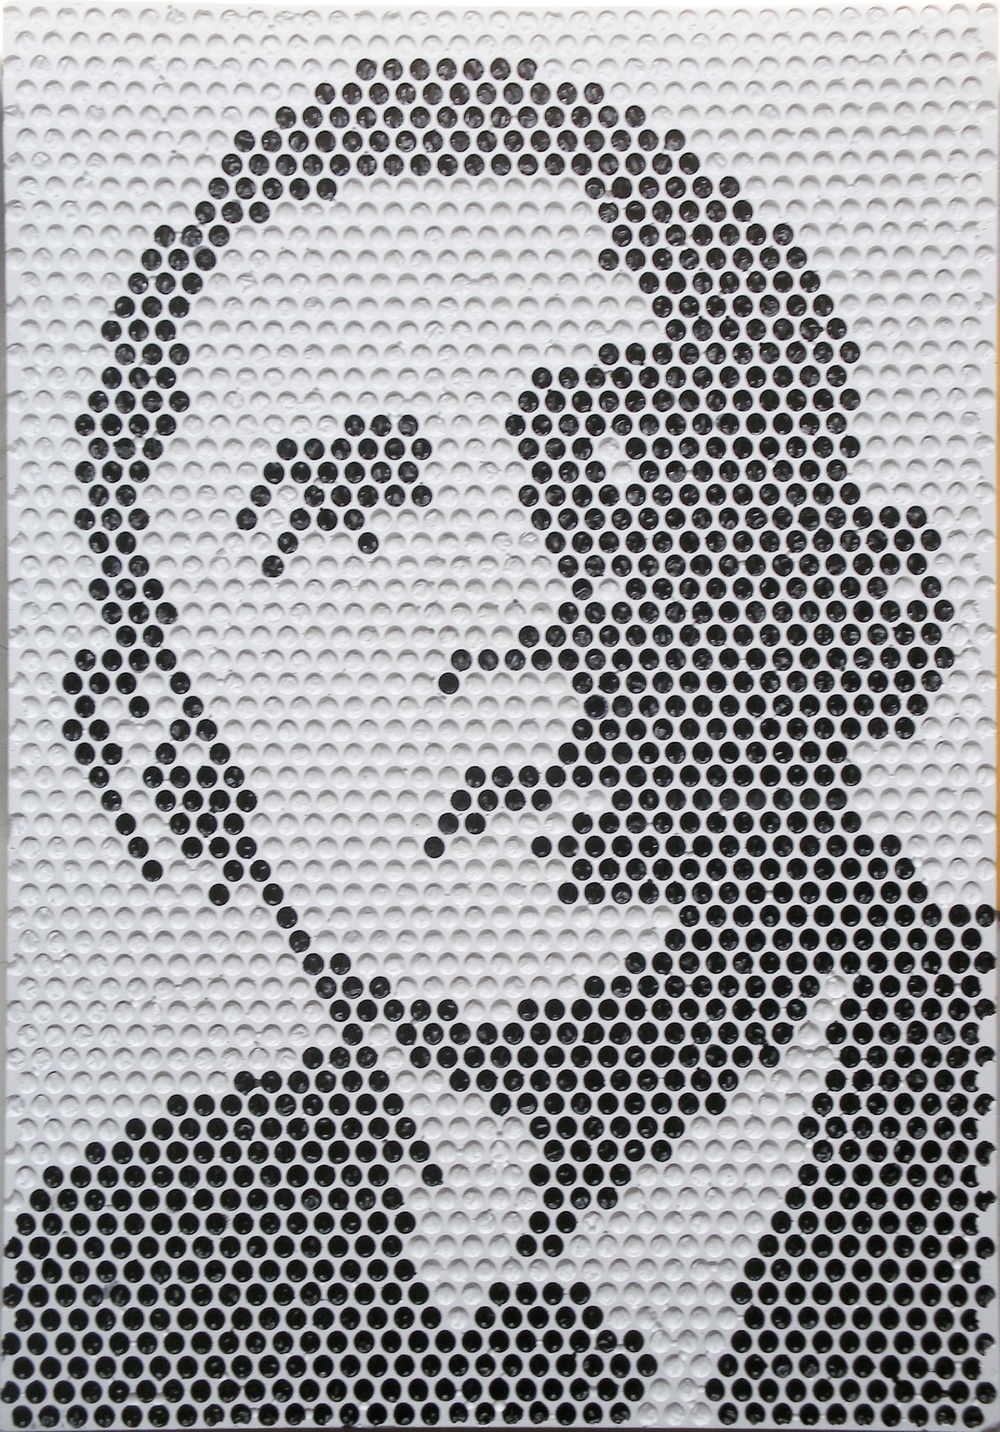 Bubble Wrap Obama